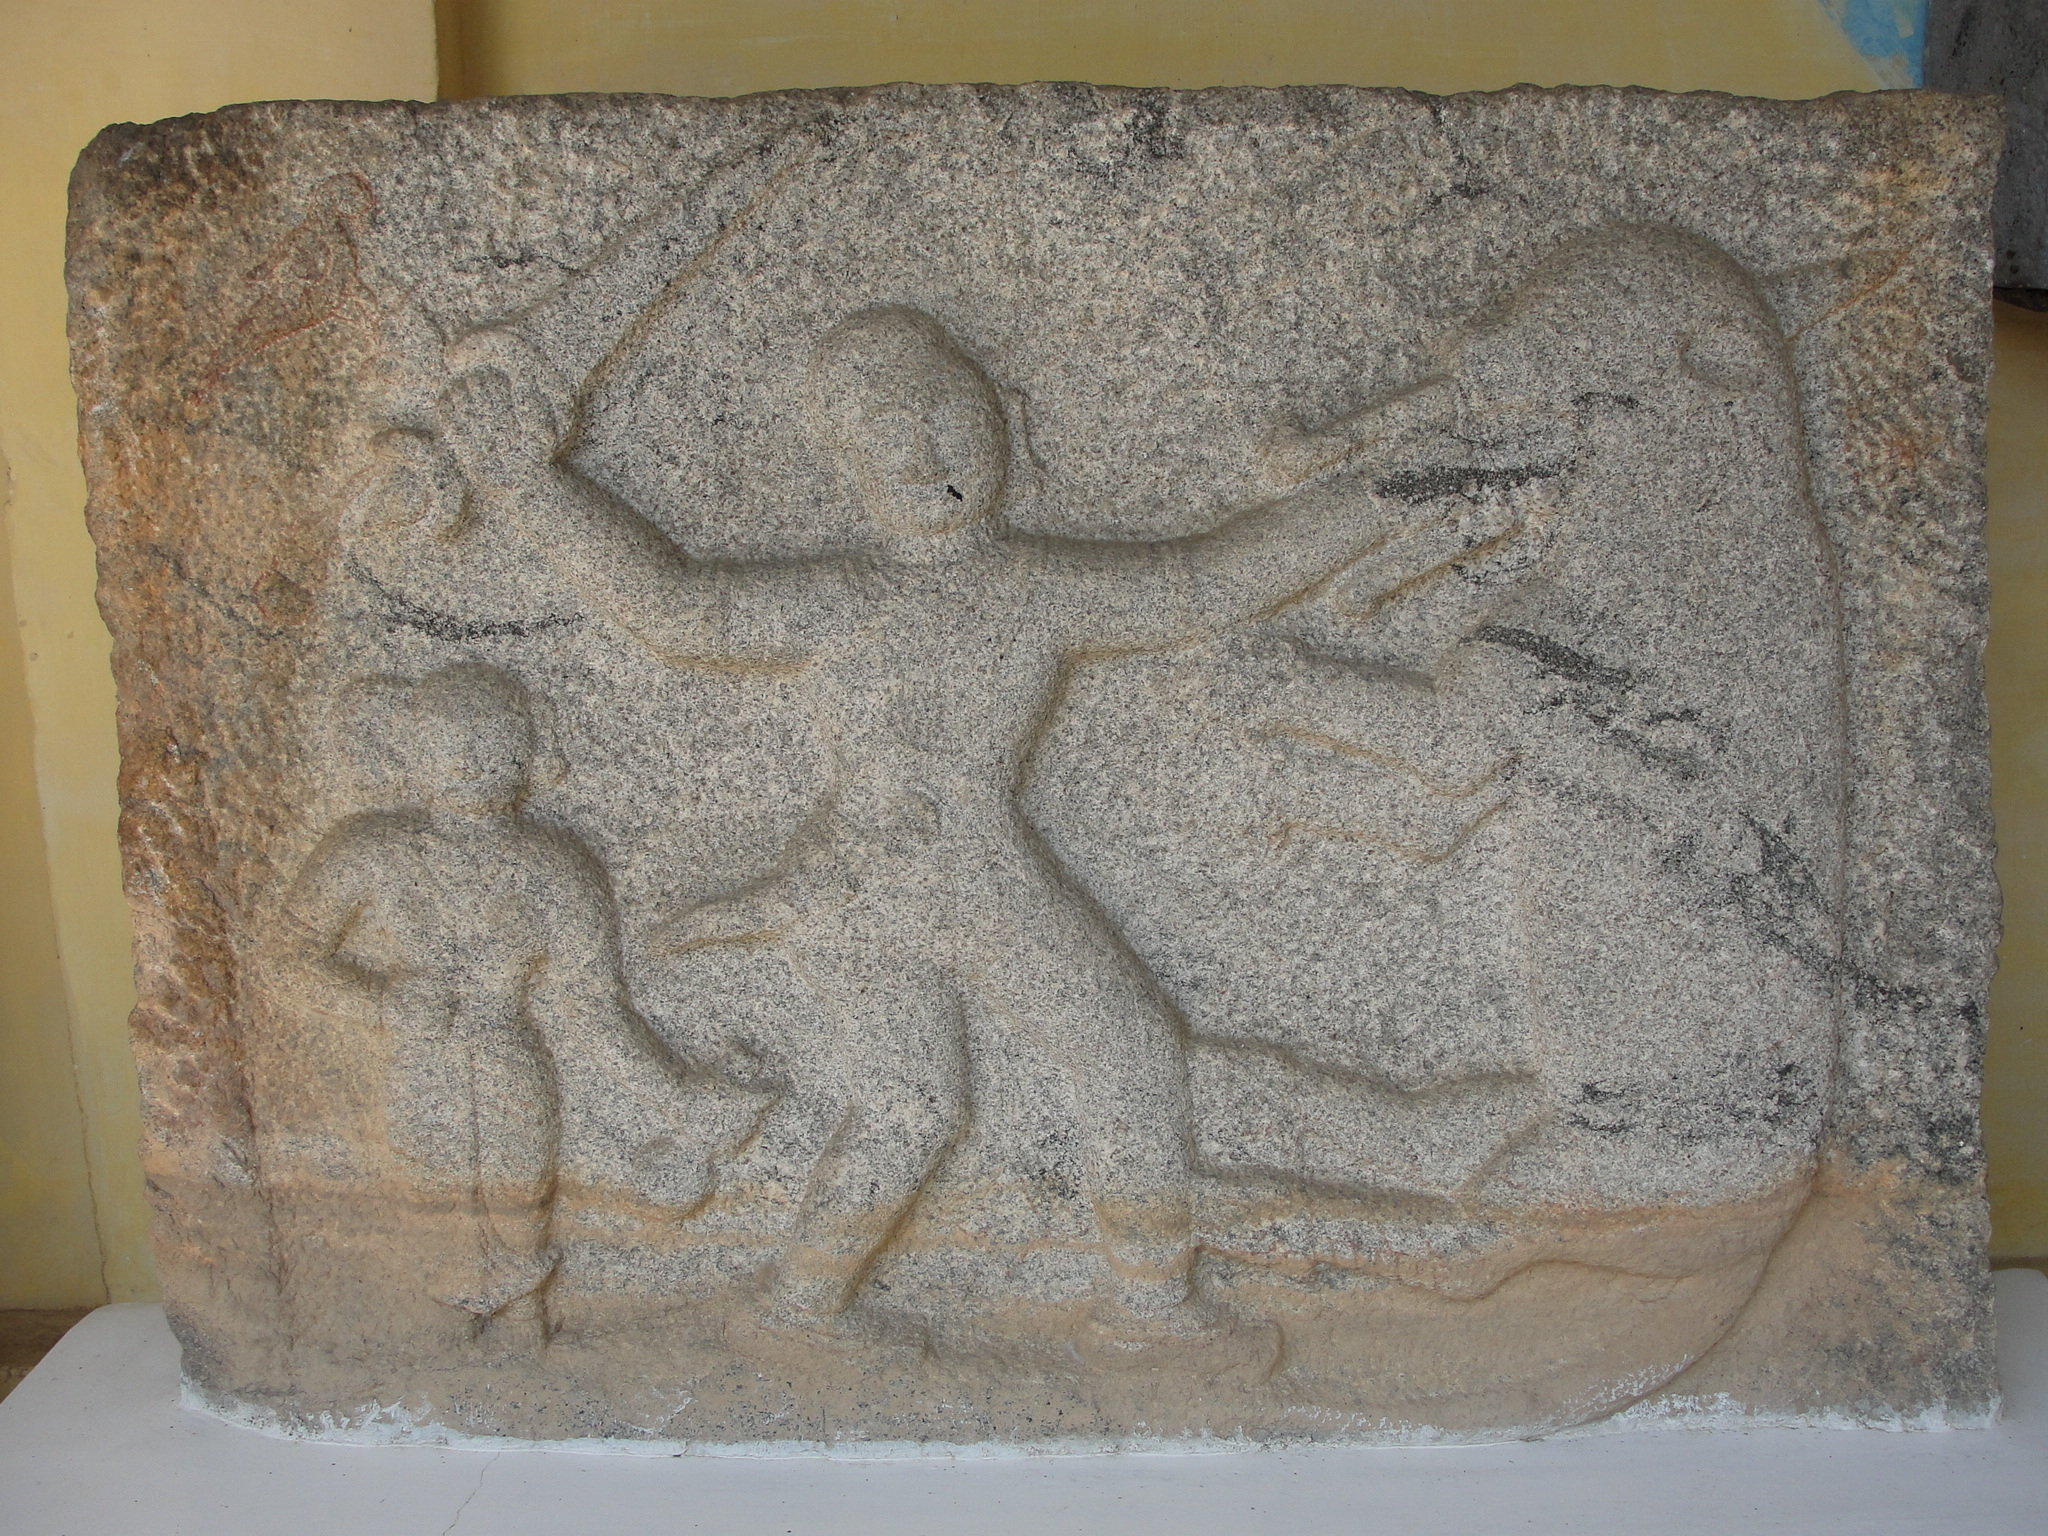 http://upload.wikimedia.org/wikipedia/commons/d/d9/12th_century.A.D.Hero_Stone.JPG